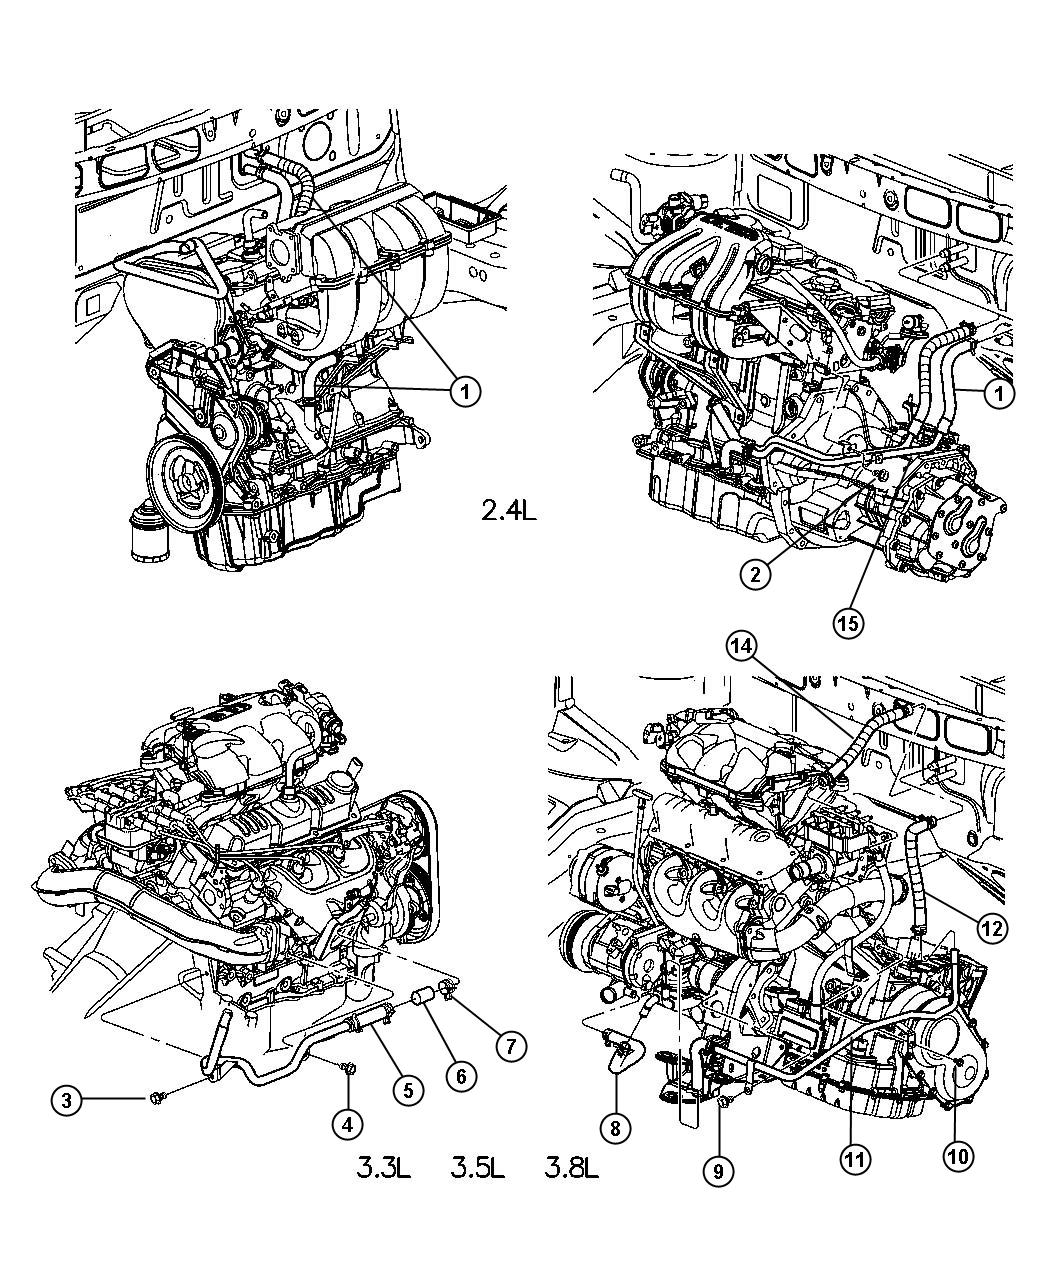 Dodge Caravan 2 4l Engine Diagram Wiring Library 2005 Water Leaks On A Grand General Auto Repair 00i72503